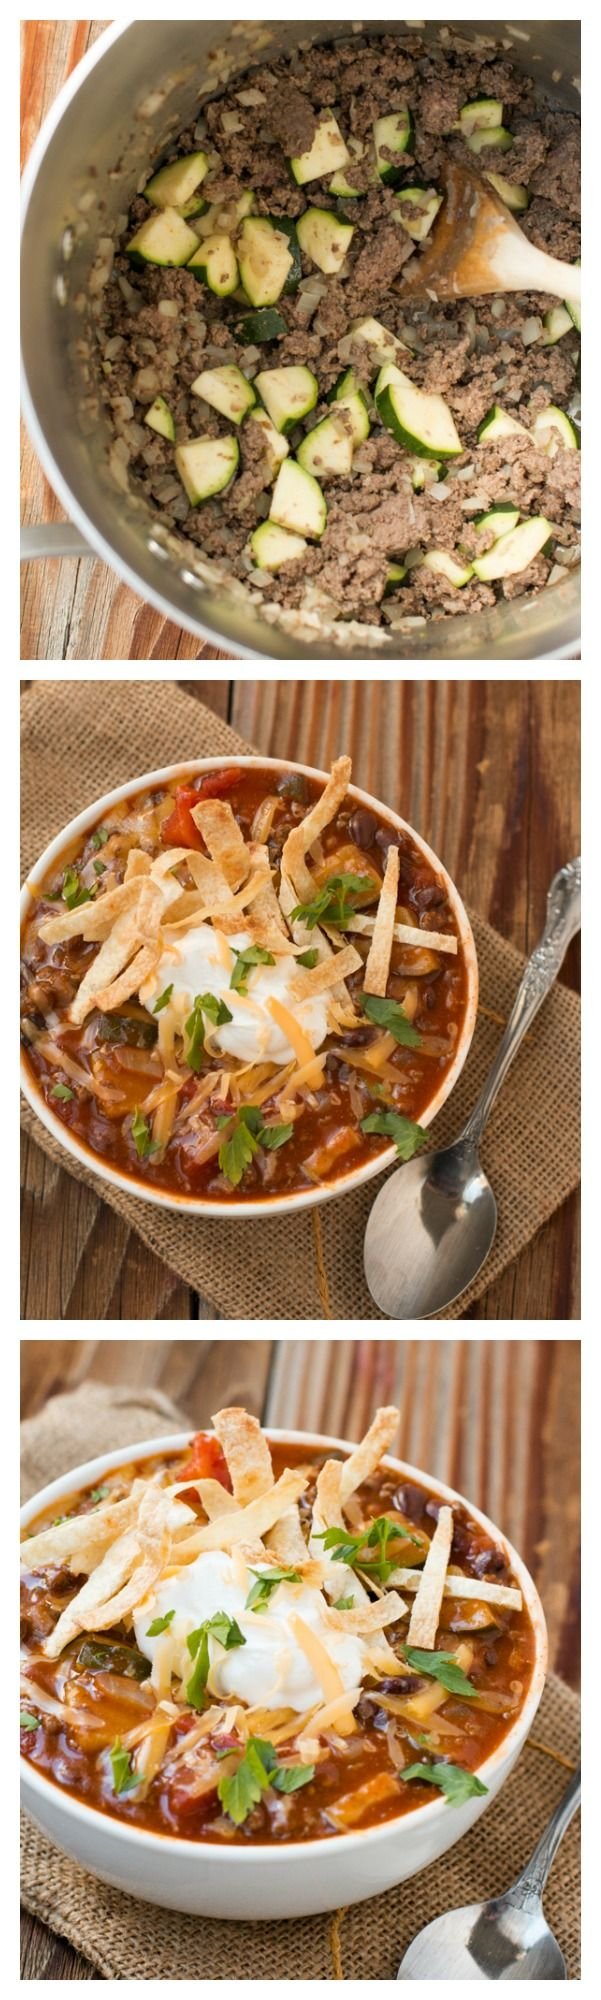 Enchilada soup that is quick and easy to make, but delicious enough that everyone will be begging for the recipe.